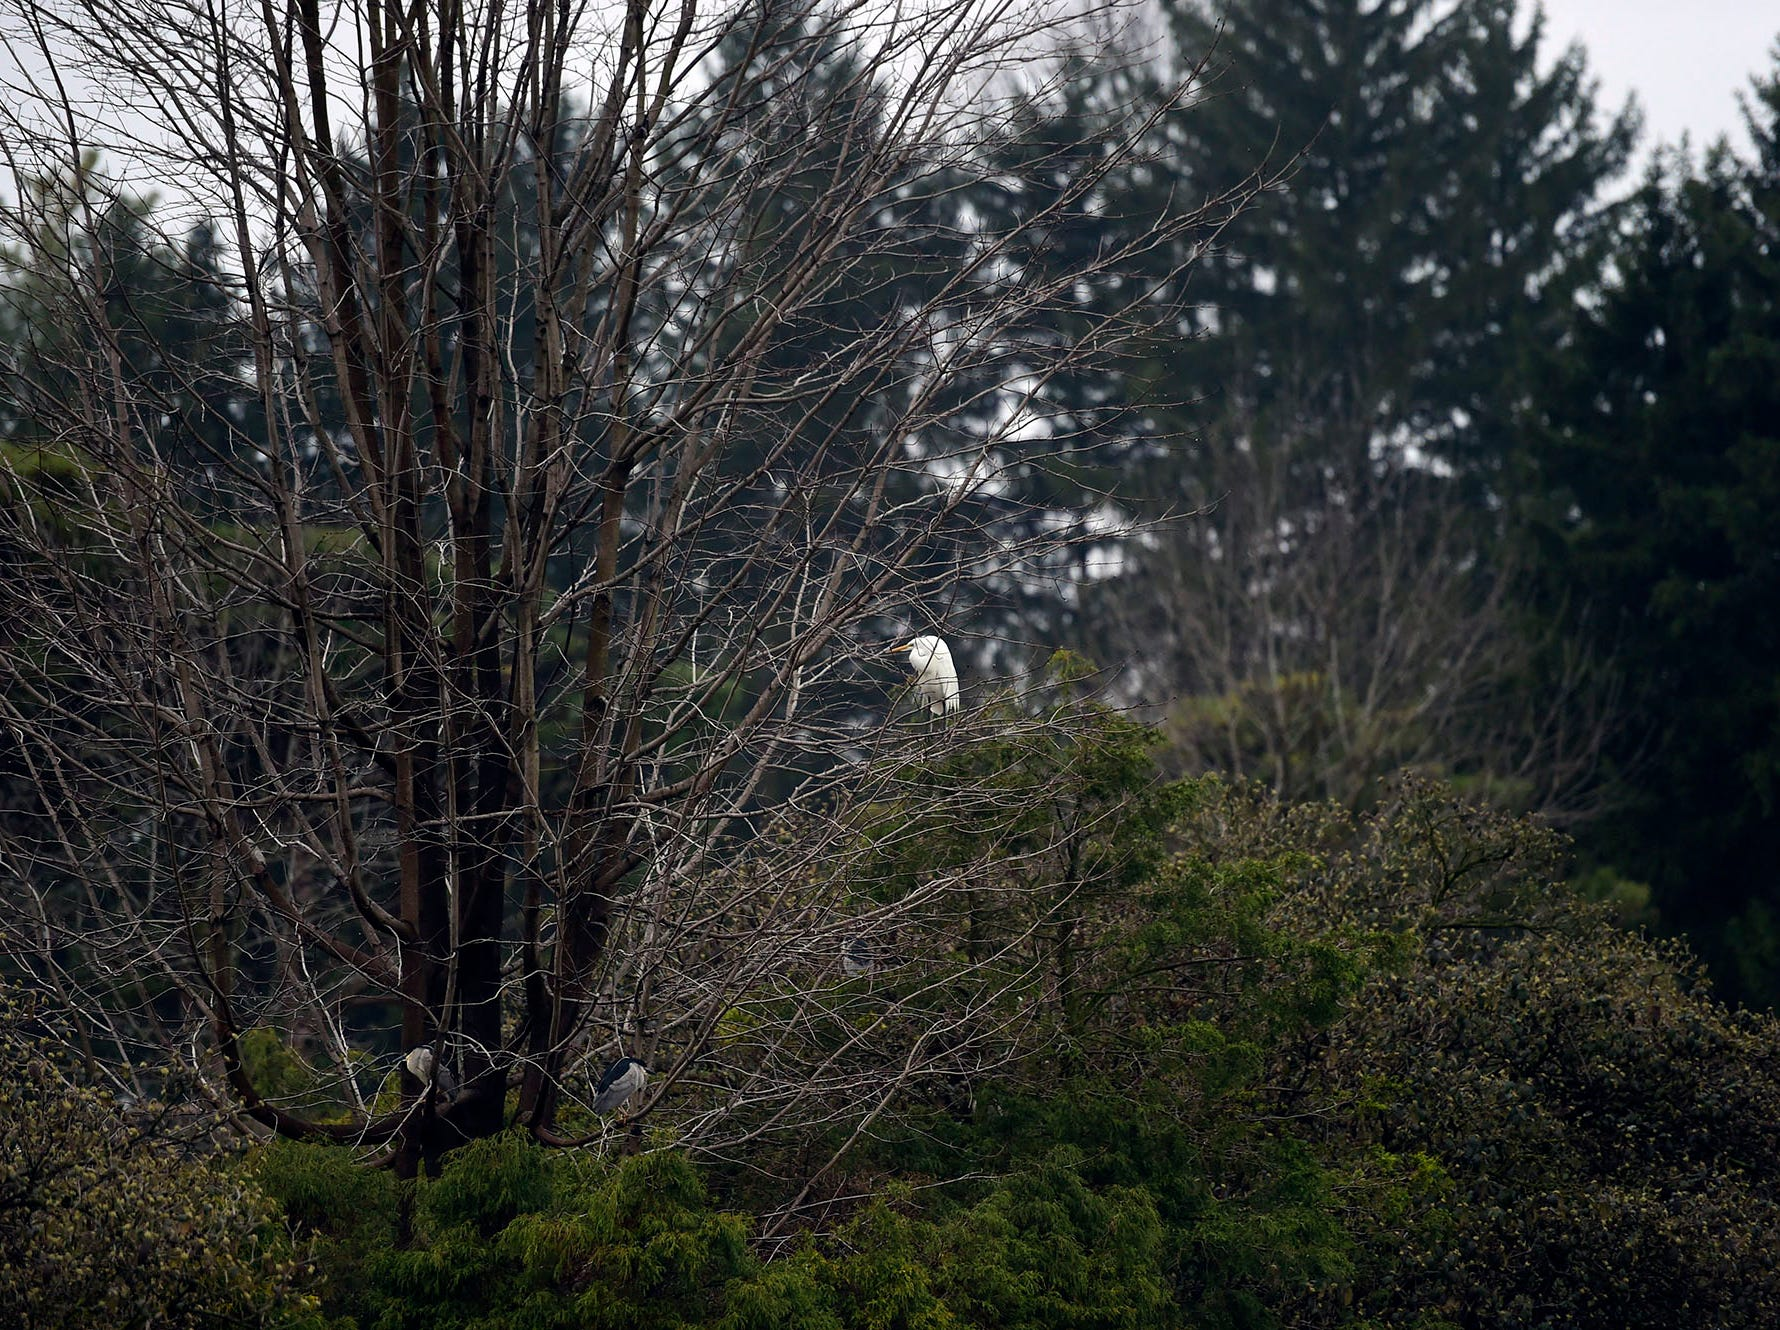 A great egret, in the center, and night herons perch in a tree above Kiwanis Lake early Saturday morning April 6, 2019. Both species are listed as endangered in Pennsylvania.